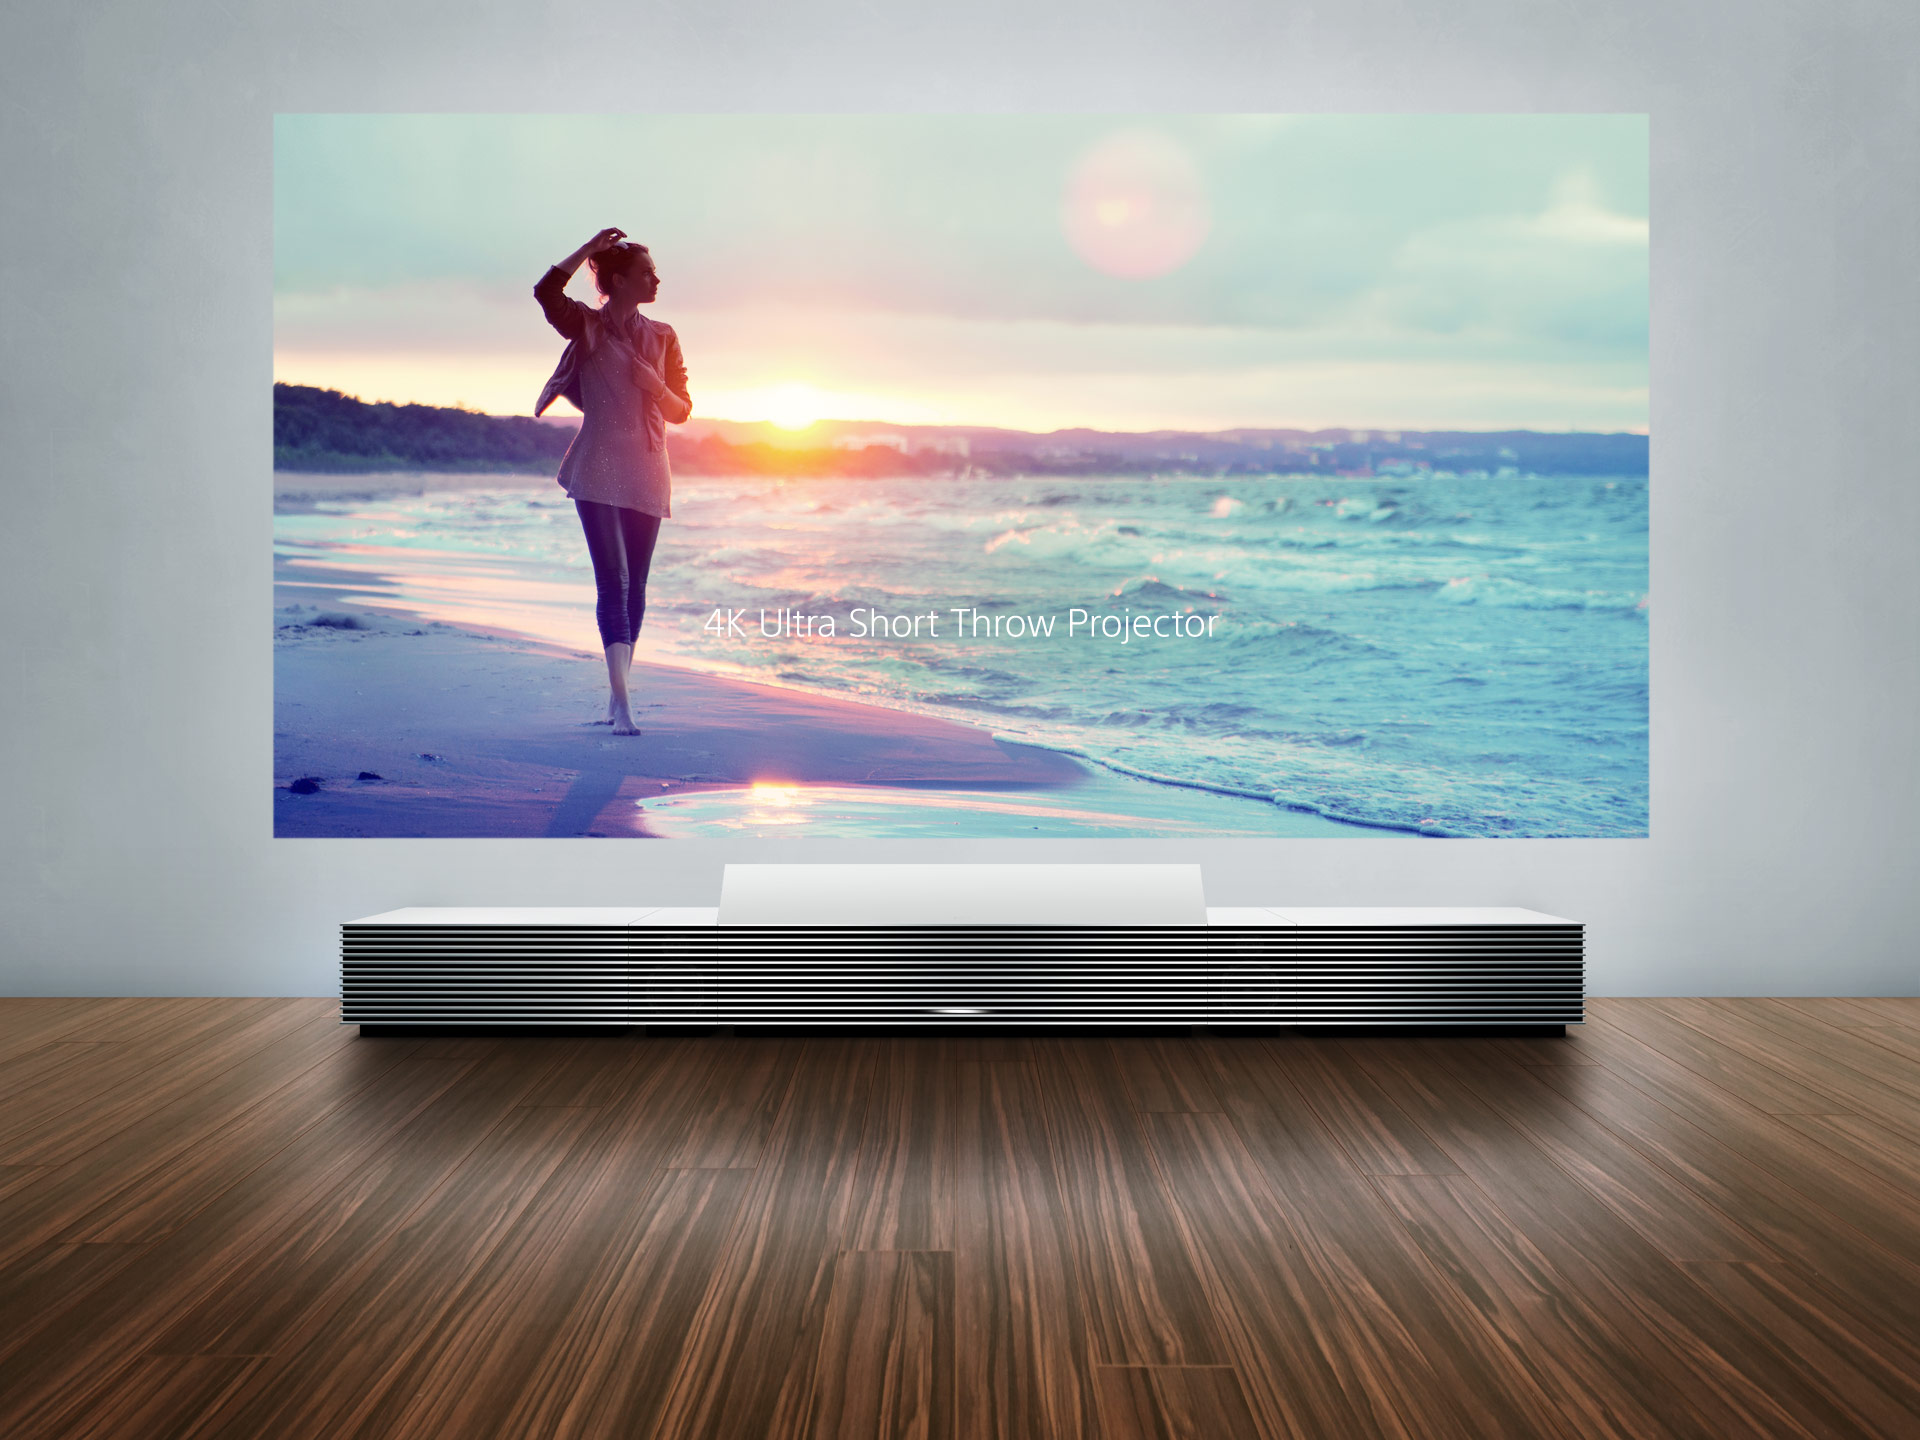 VDCDS - Sony 4K Ultra Short Throw Projector